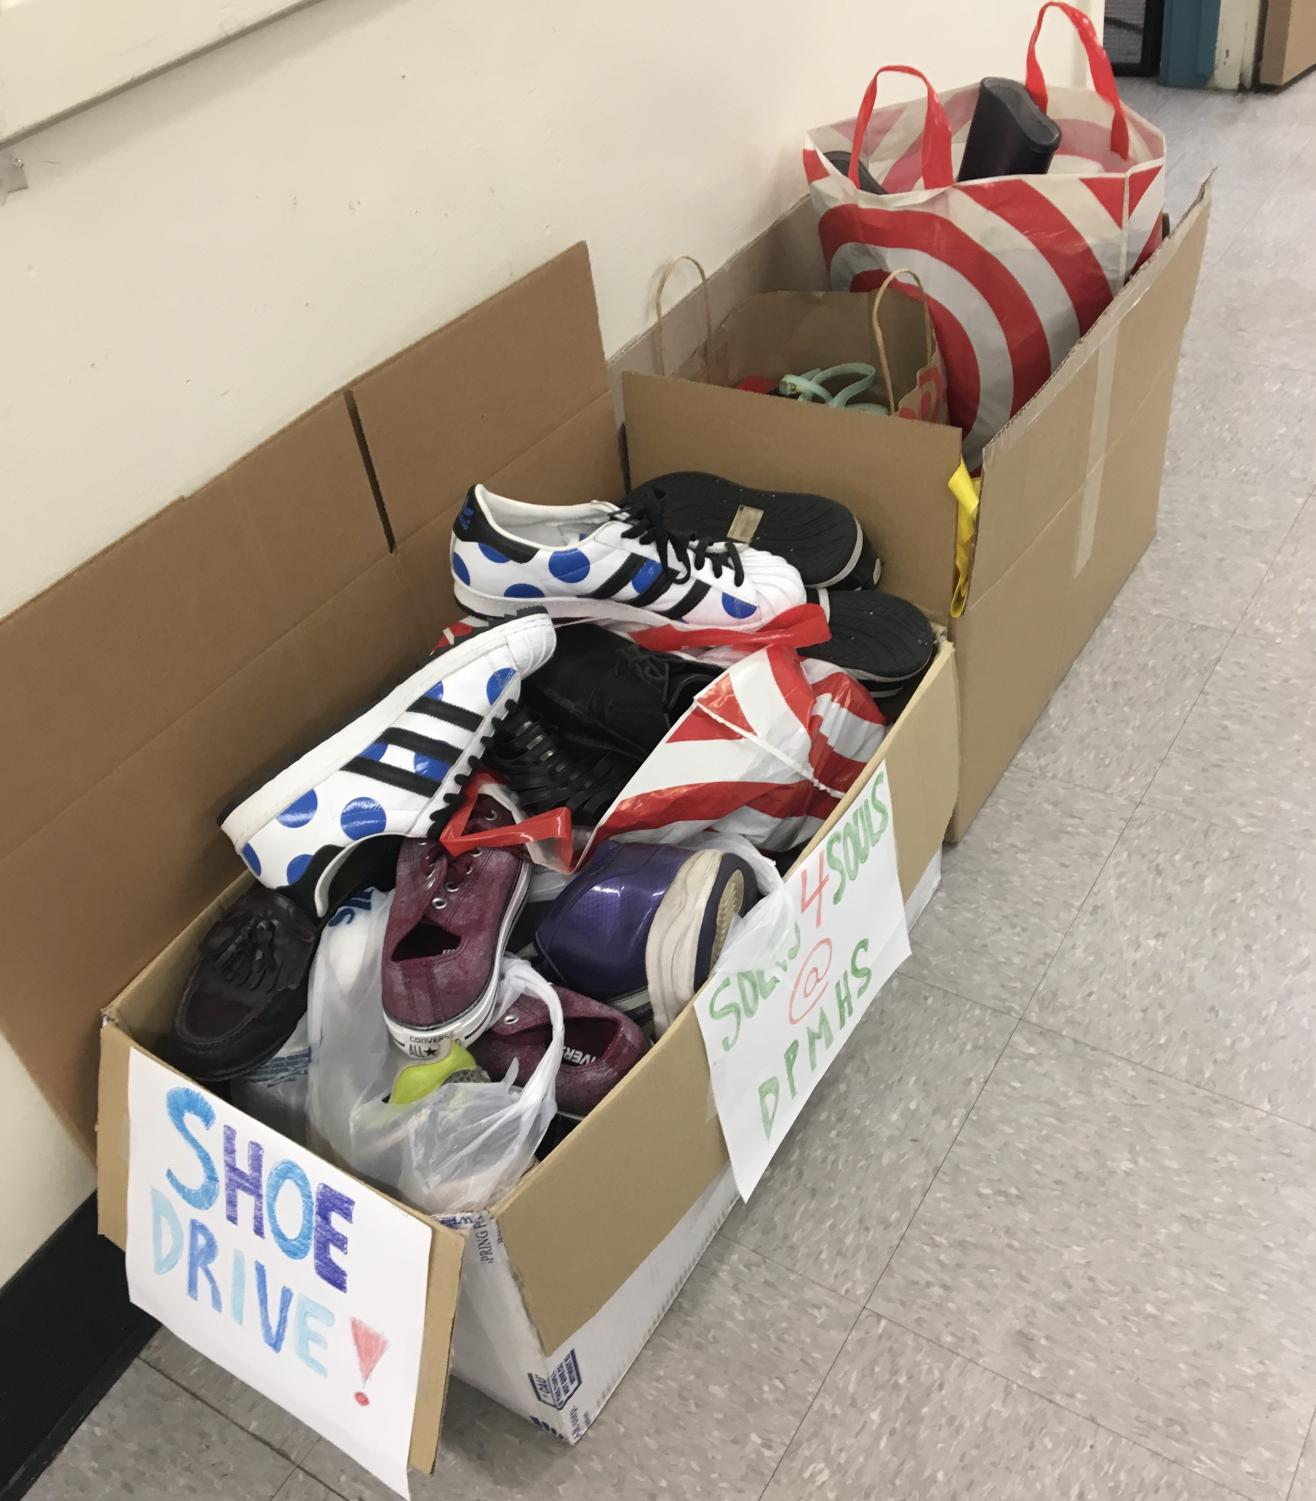 Organizing a shoe drive is an easy way to fulfill your service-learning project requirements and help your community.